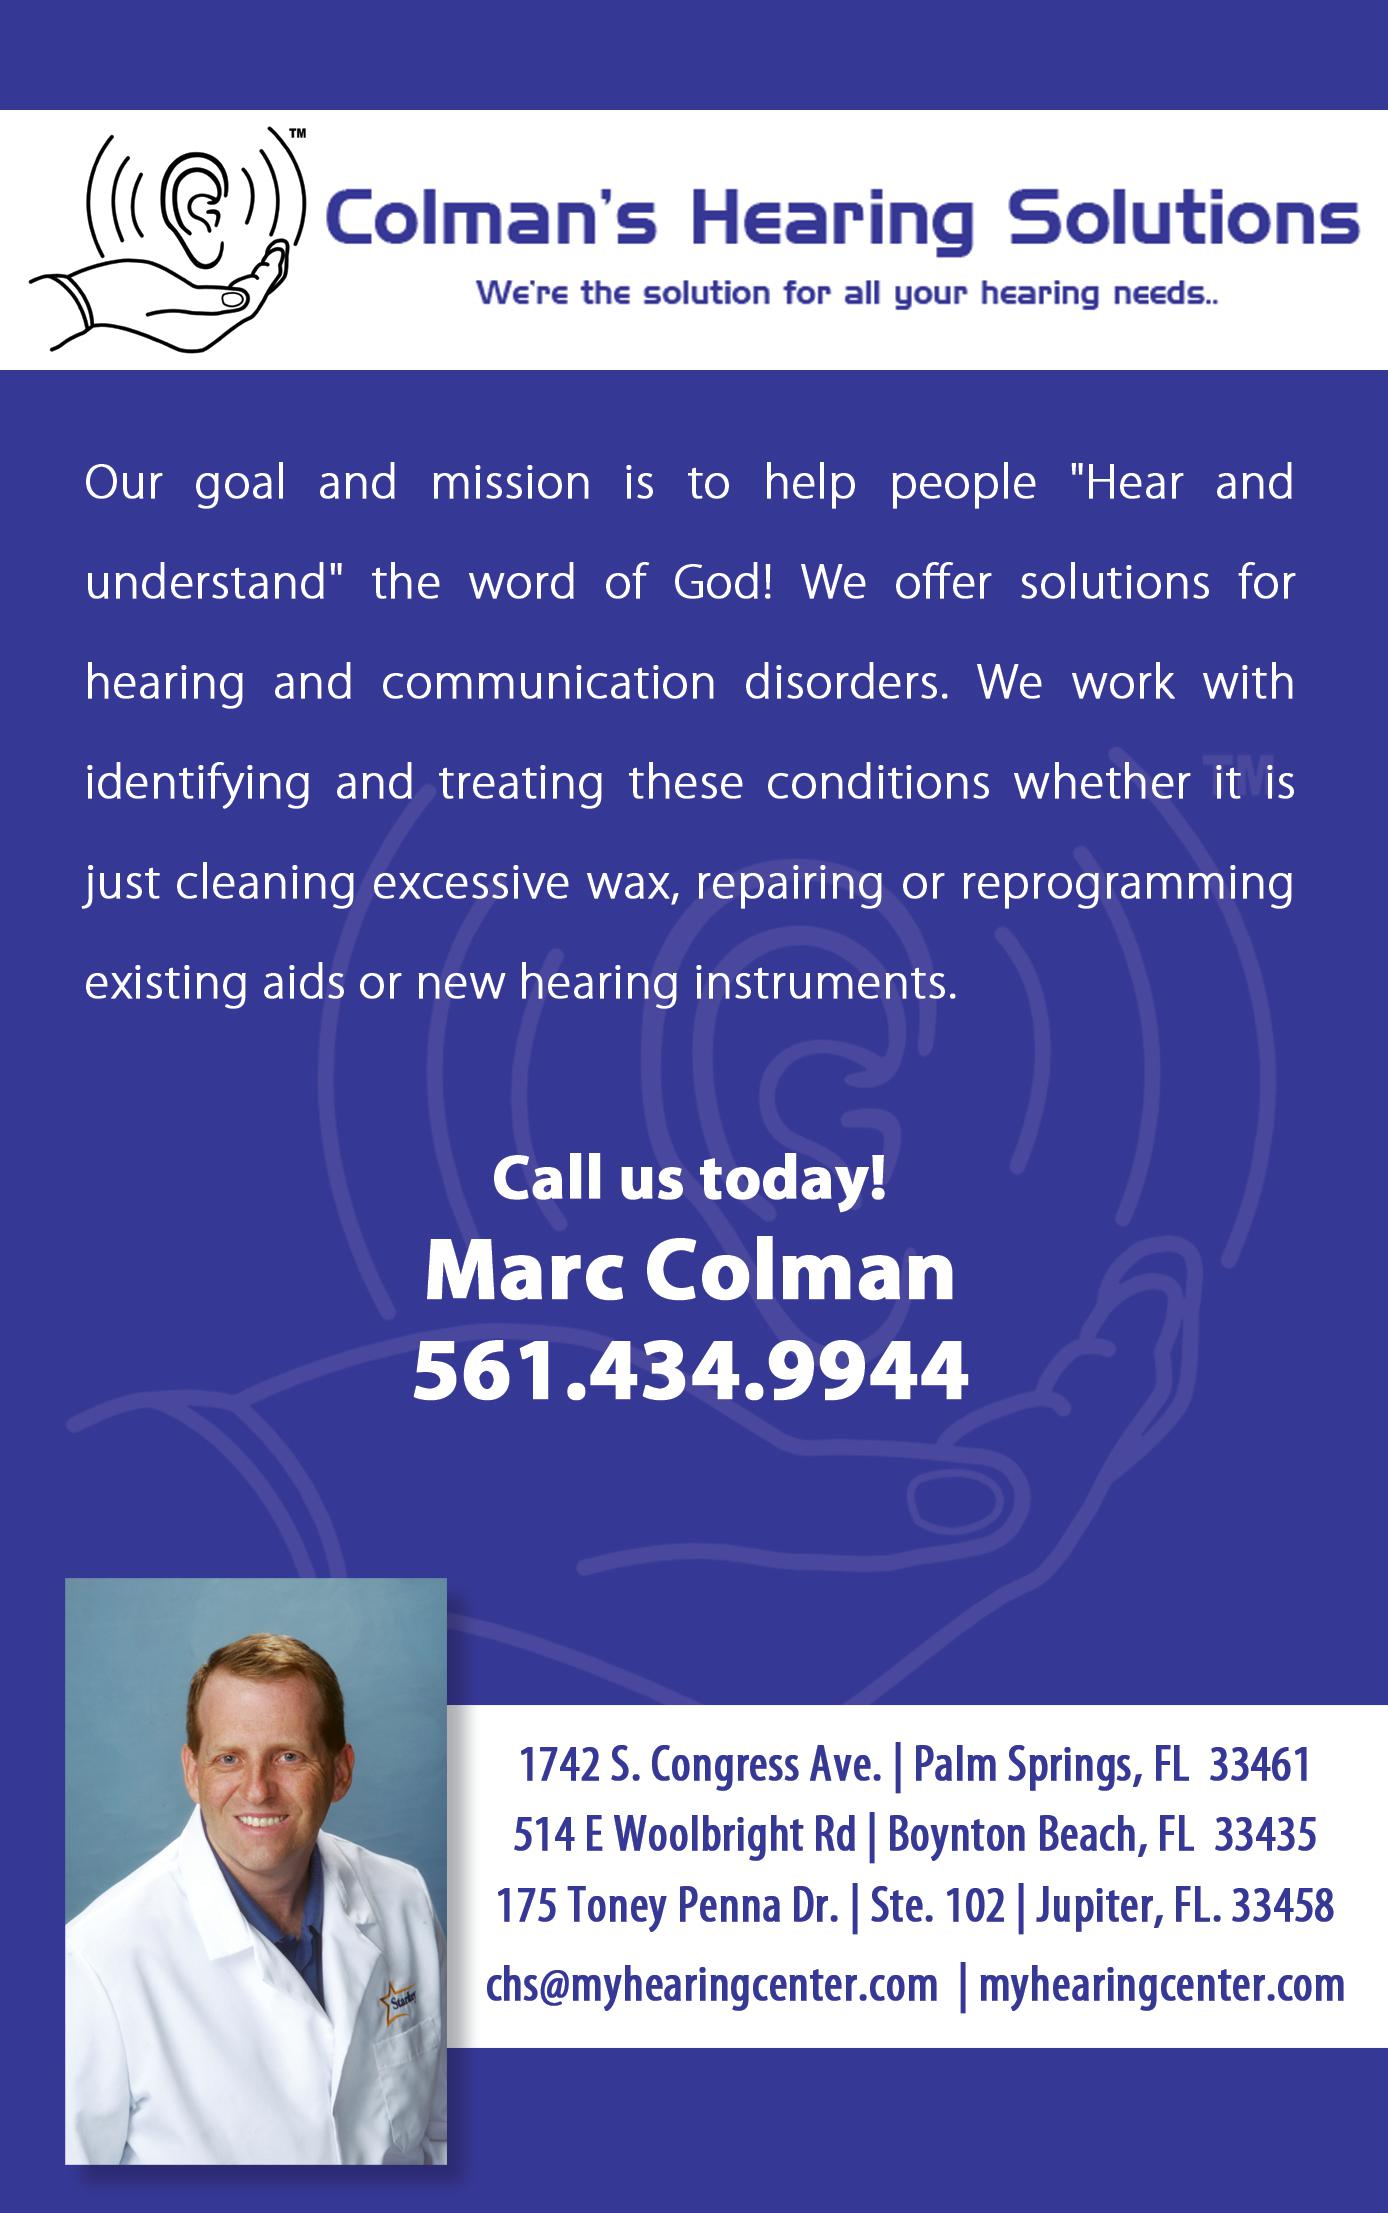 Colman's Hearing Solutions